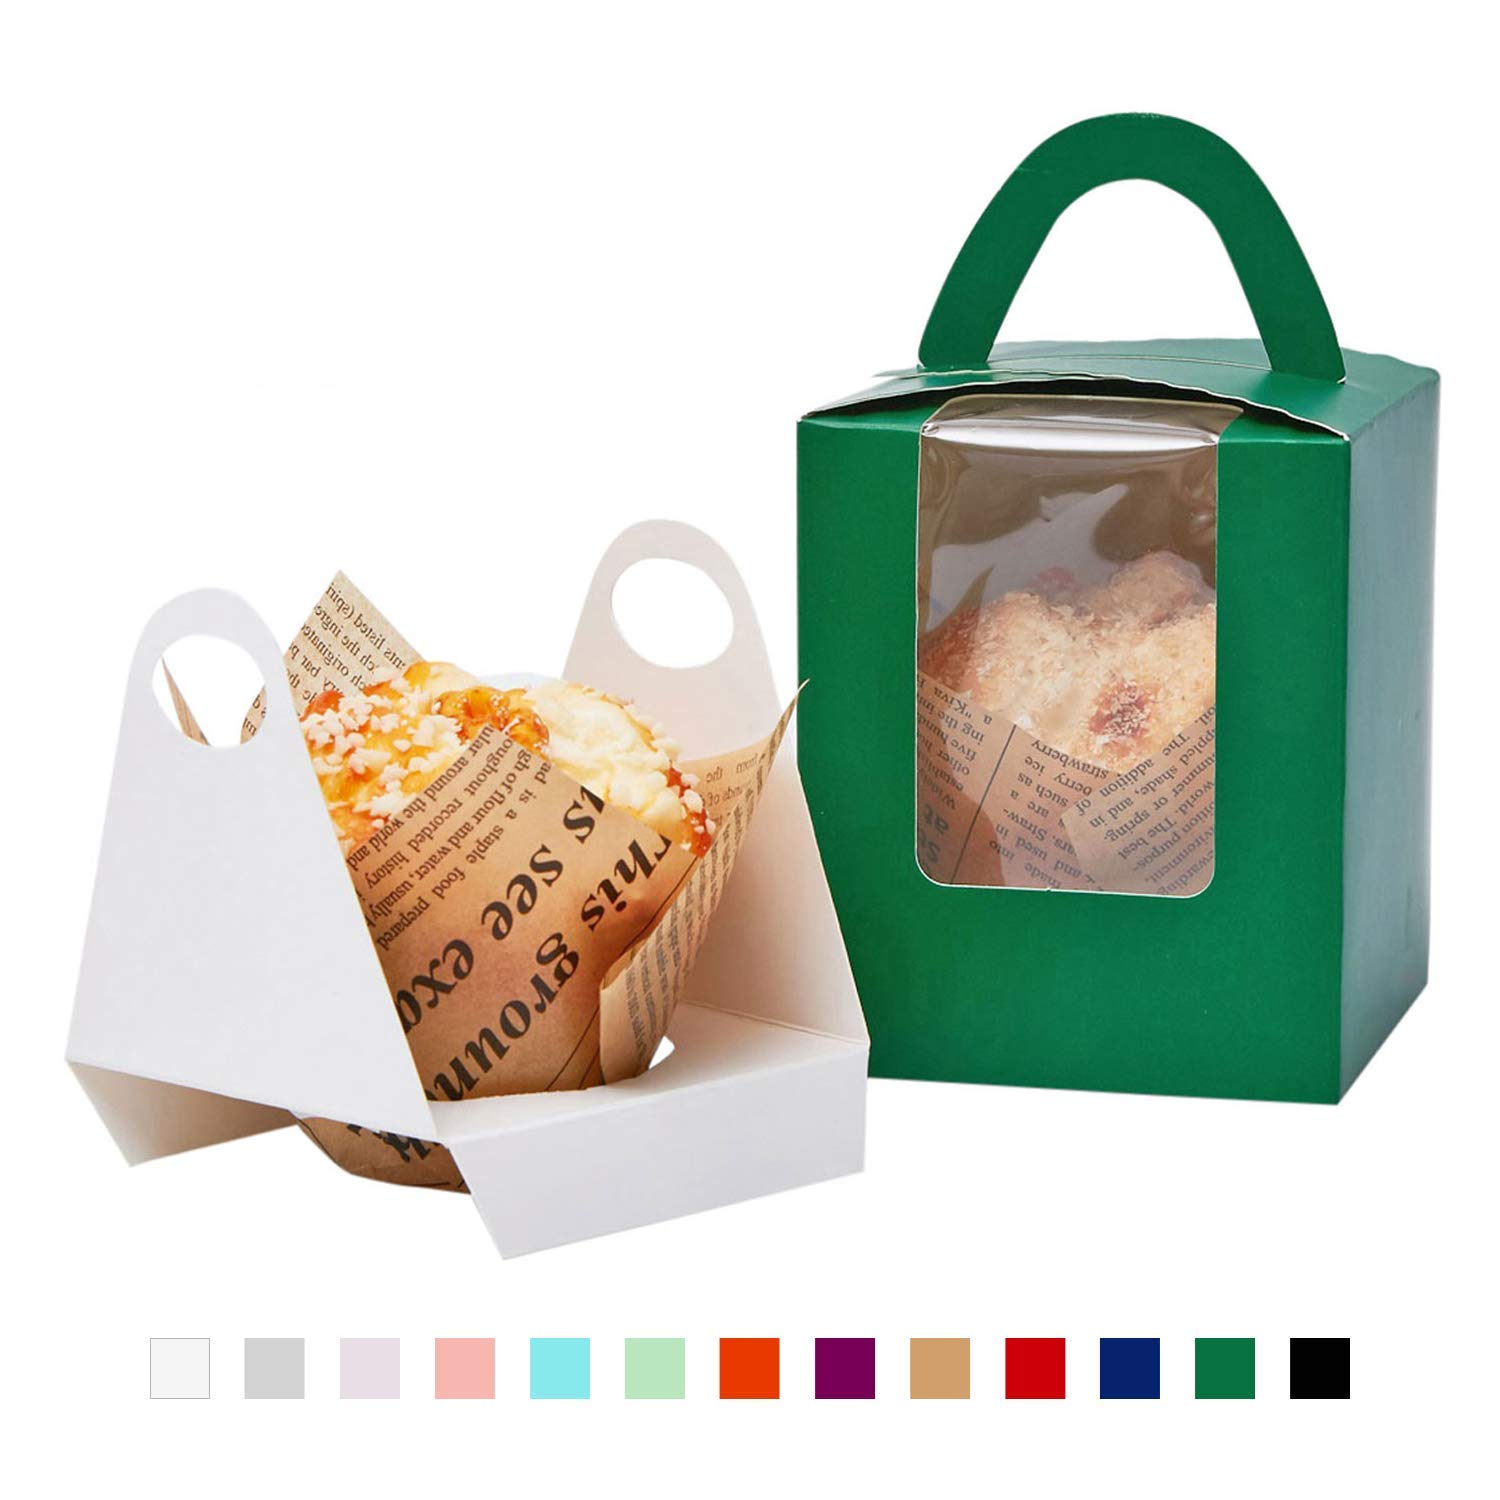 YoTruth Christmas Green Single Take Home Cupcake Boxes for Christmas Party Favors 50 Pack